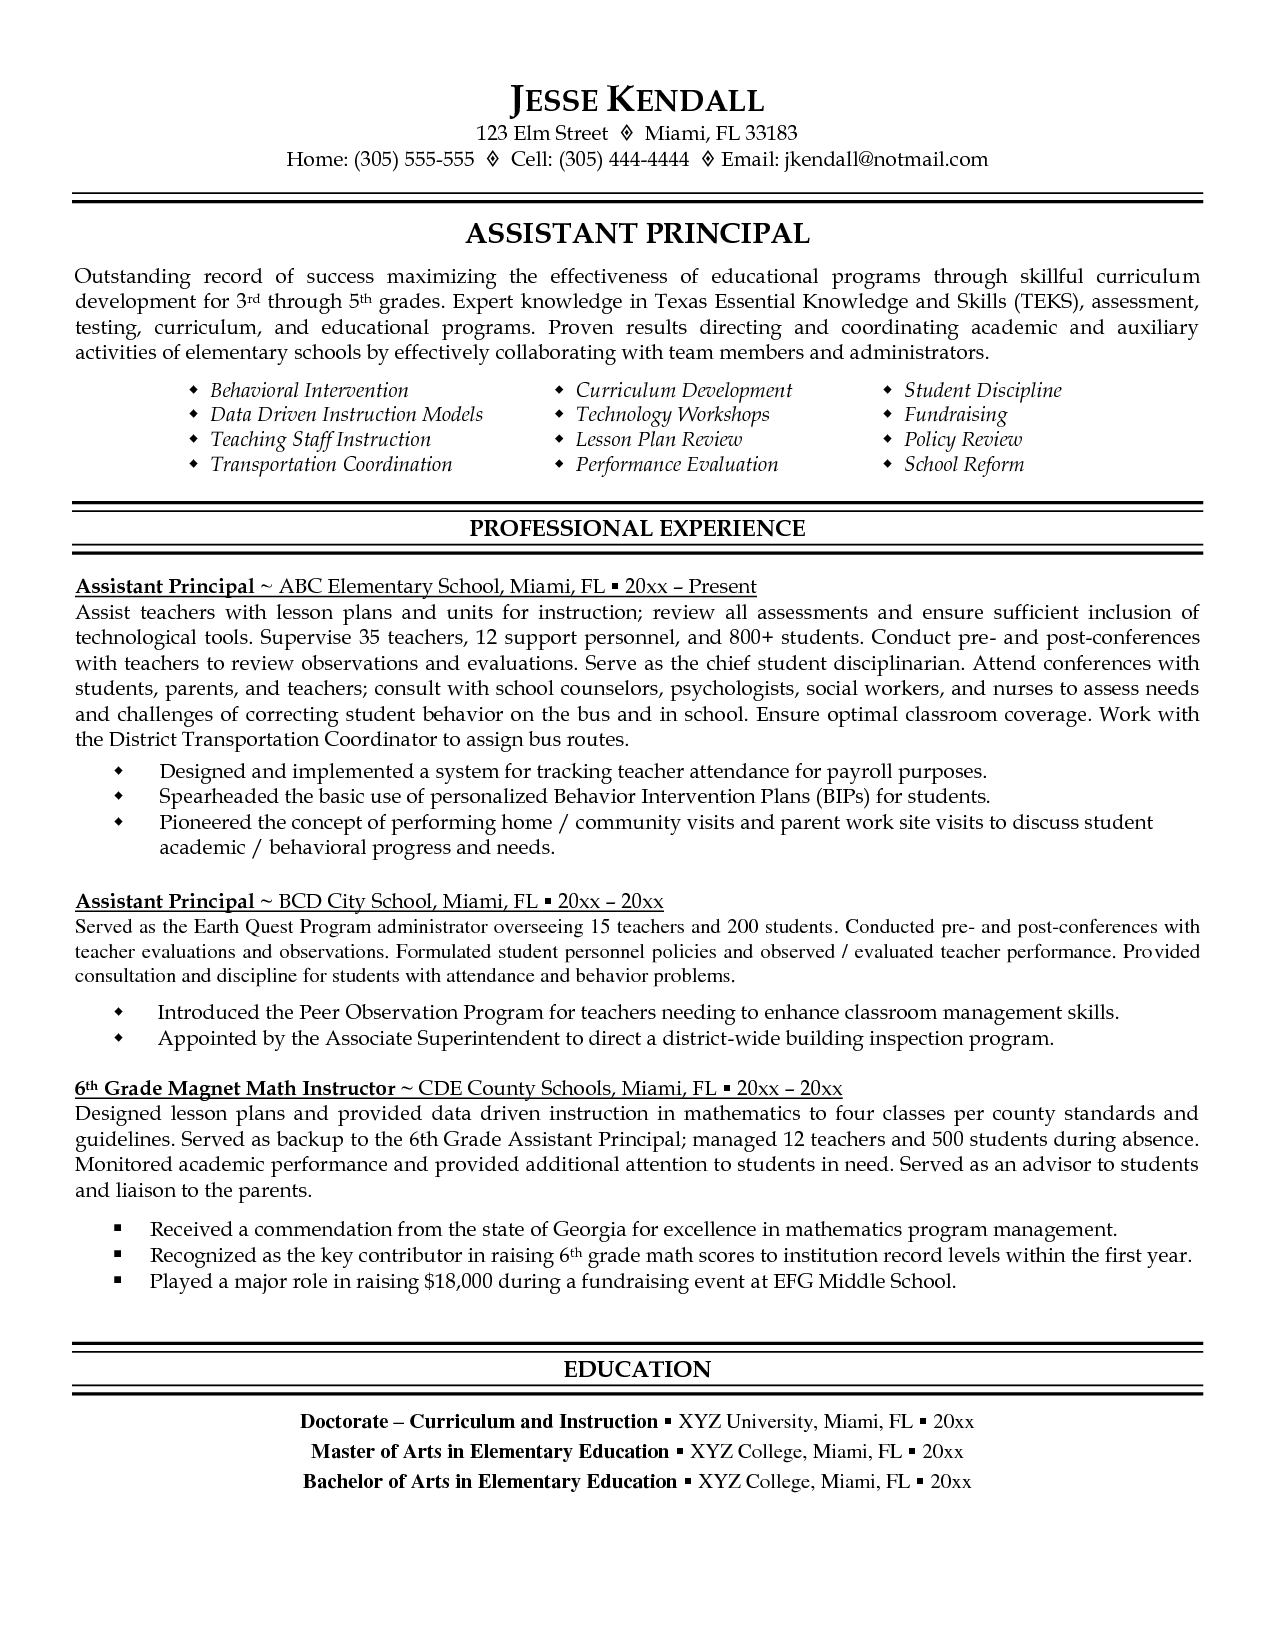 Resume For Assistant Teacher Resume And Vice Principal Assistant Principal Resume